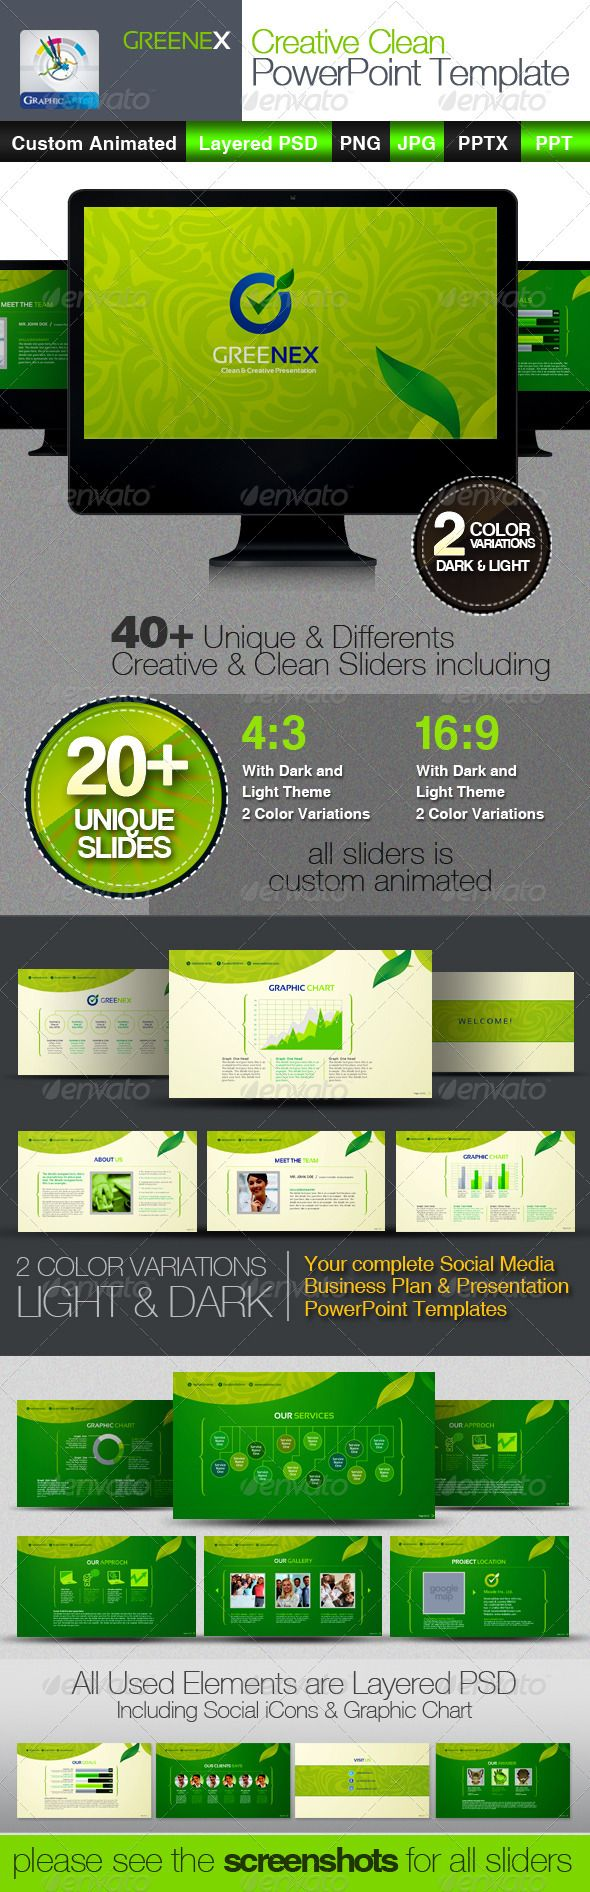 powerpoint templates for communication presentation gallery, Modern powerpoint